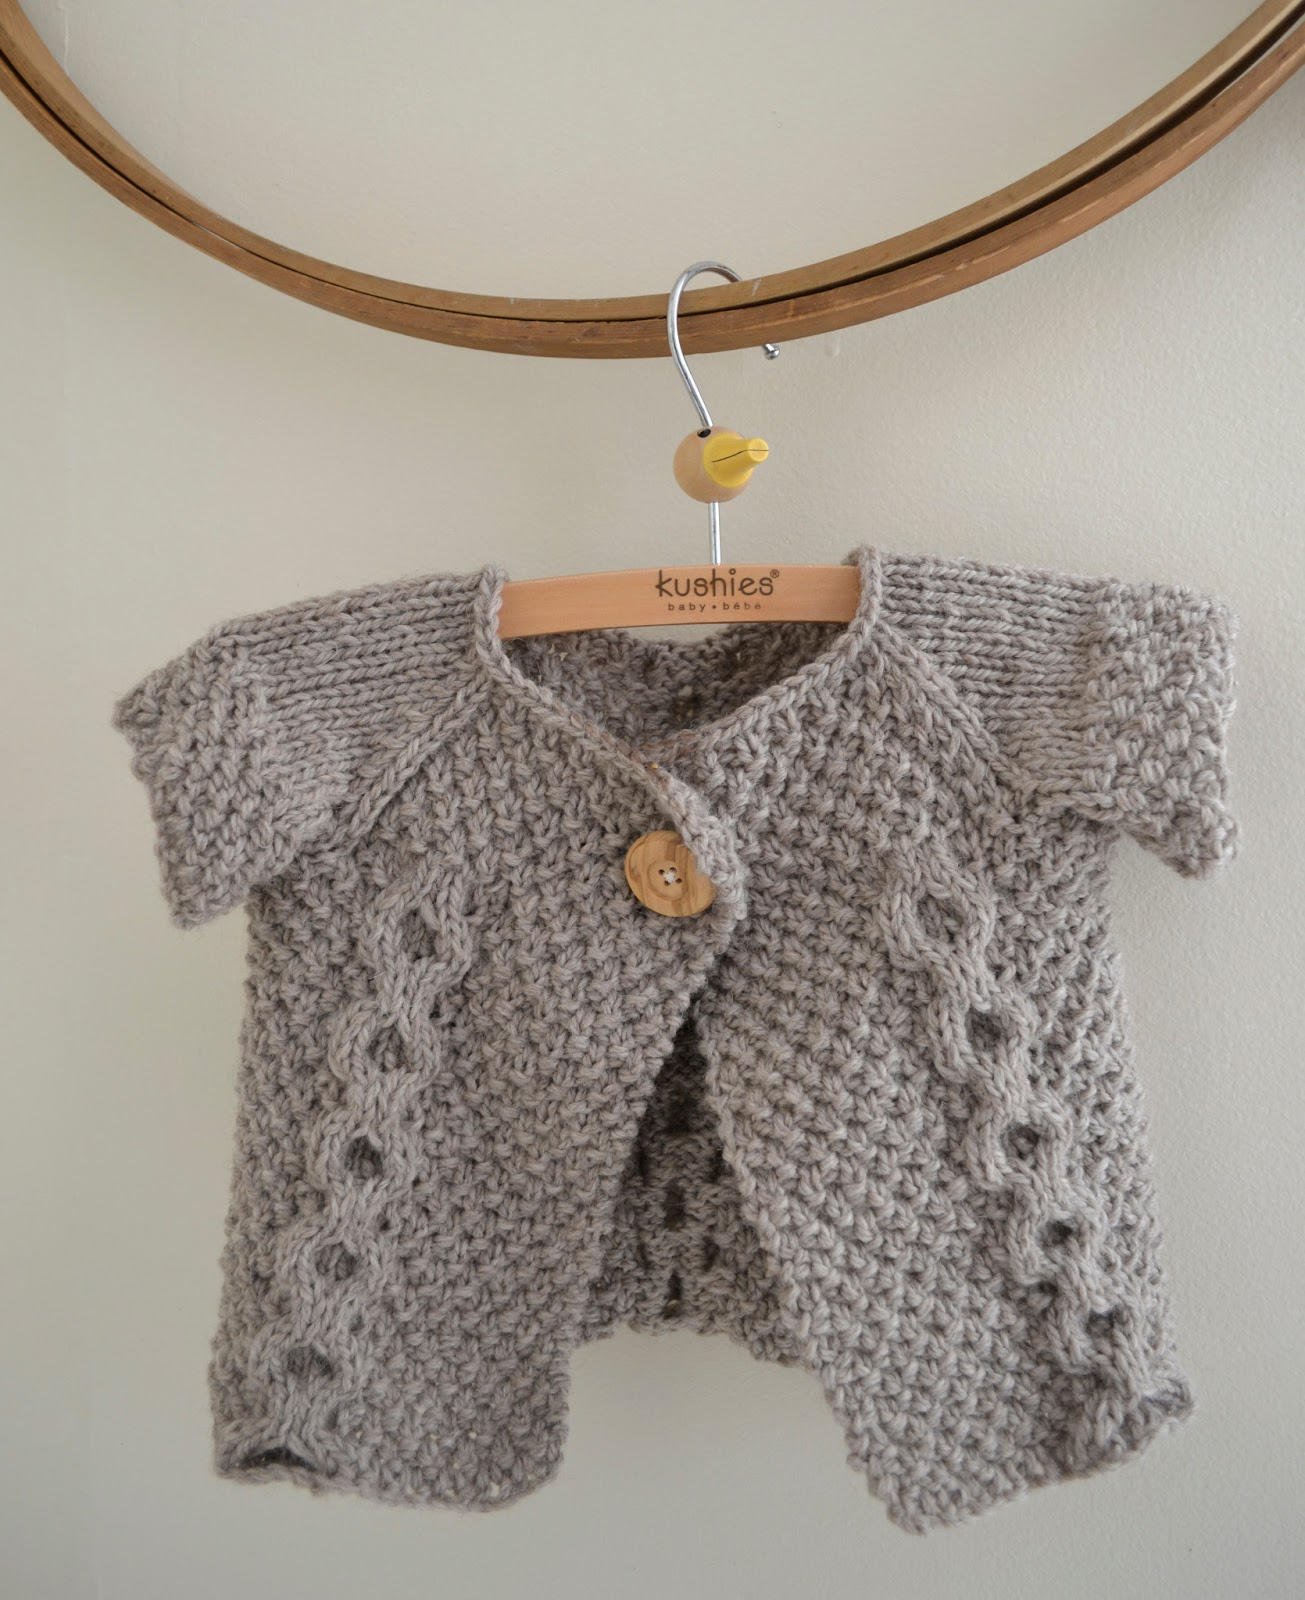 Toddler Jumper Knitting Pattern : Toddler Cable Knit Sweater Pattern - White Polo Sweater